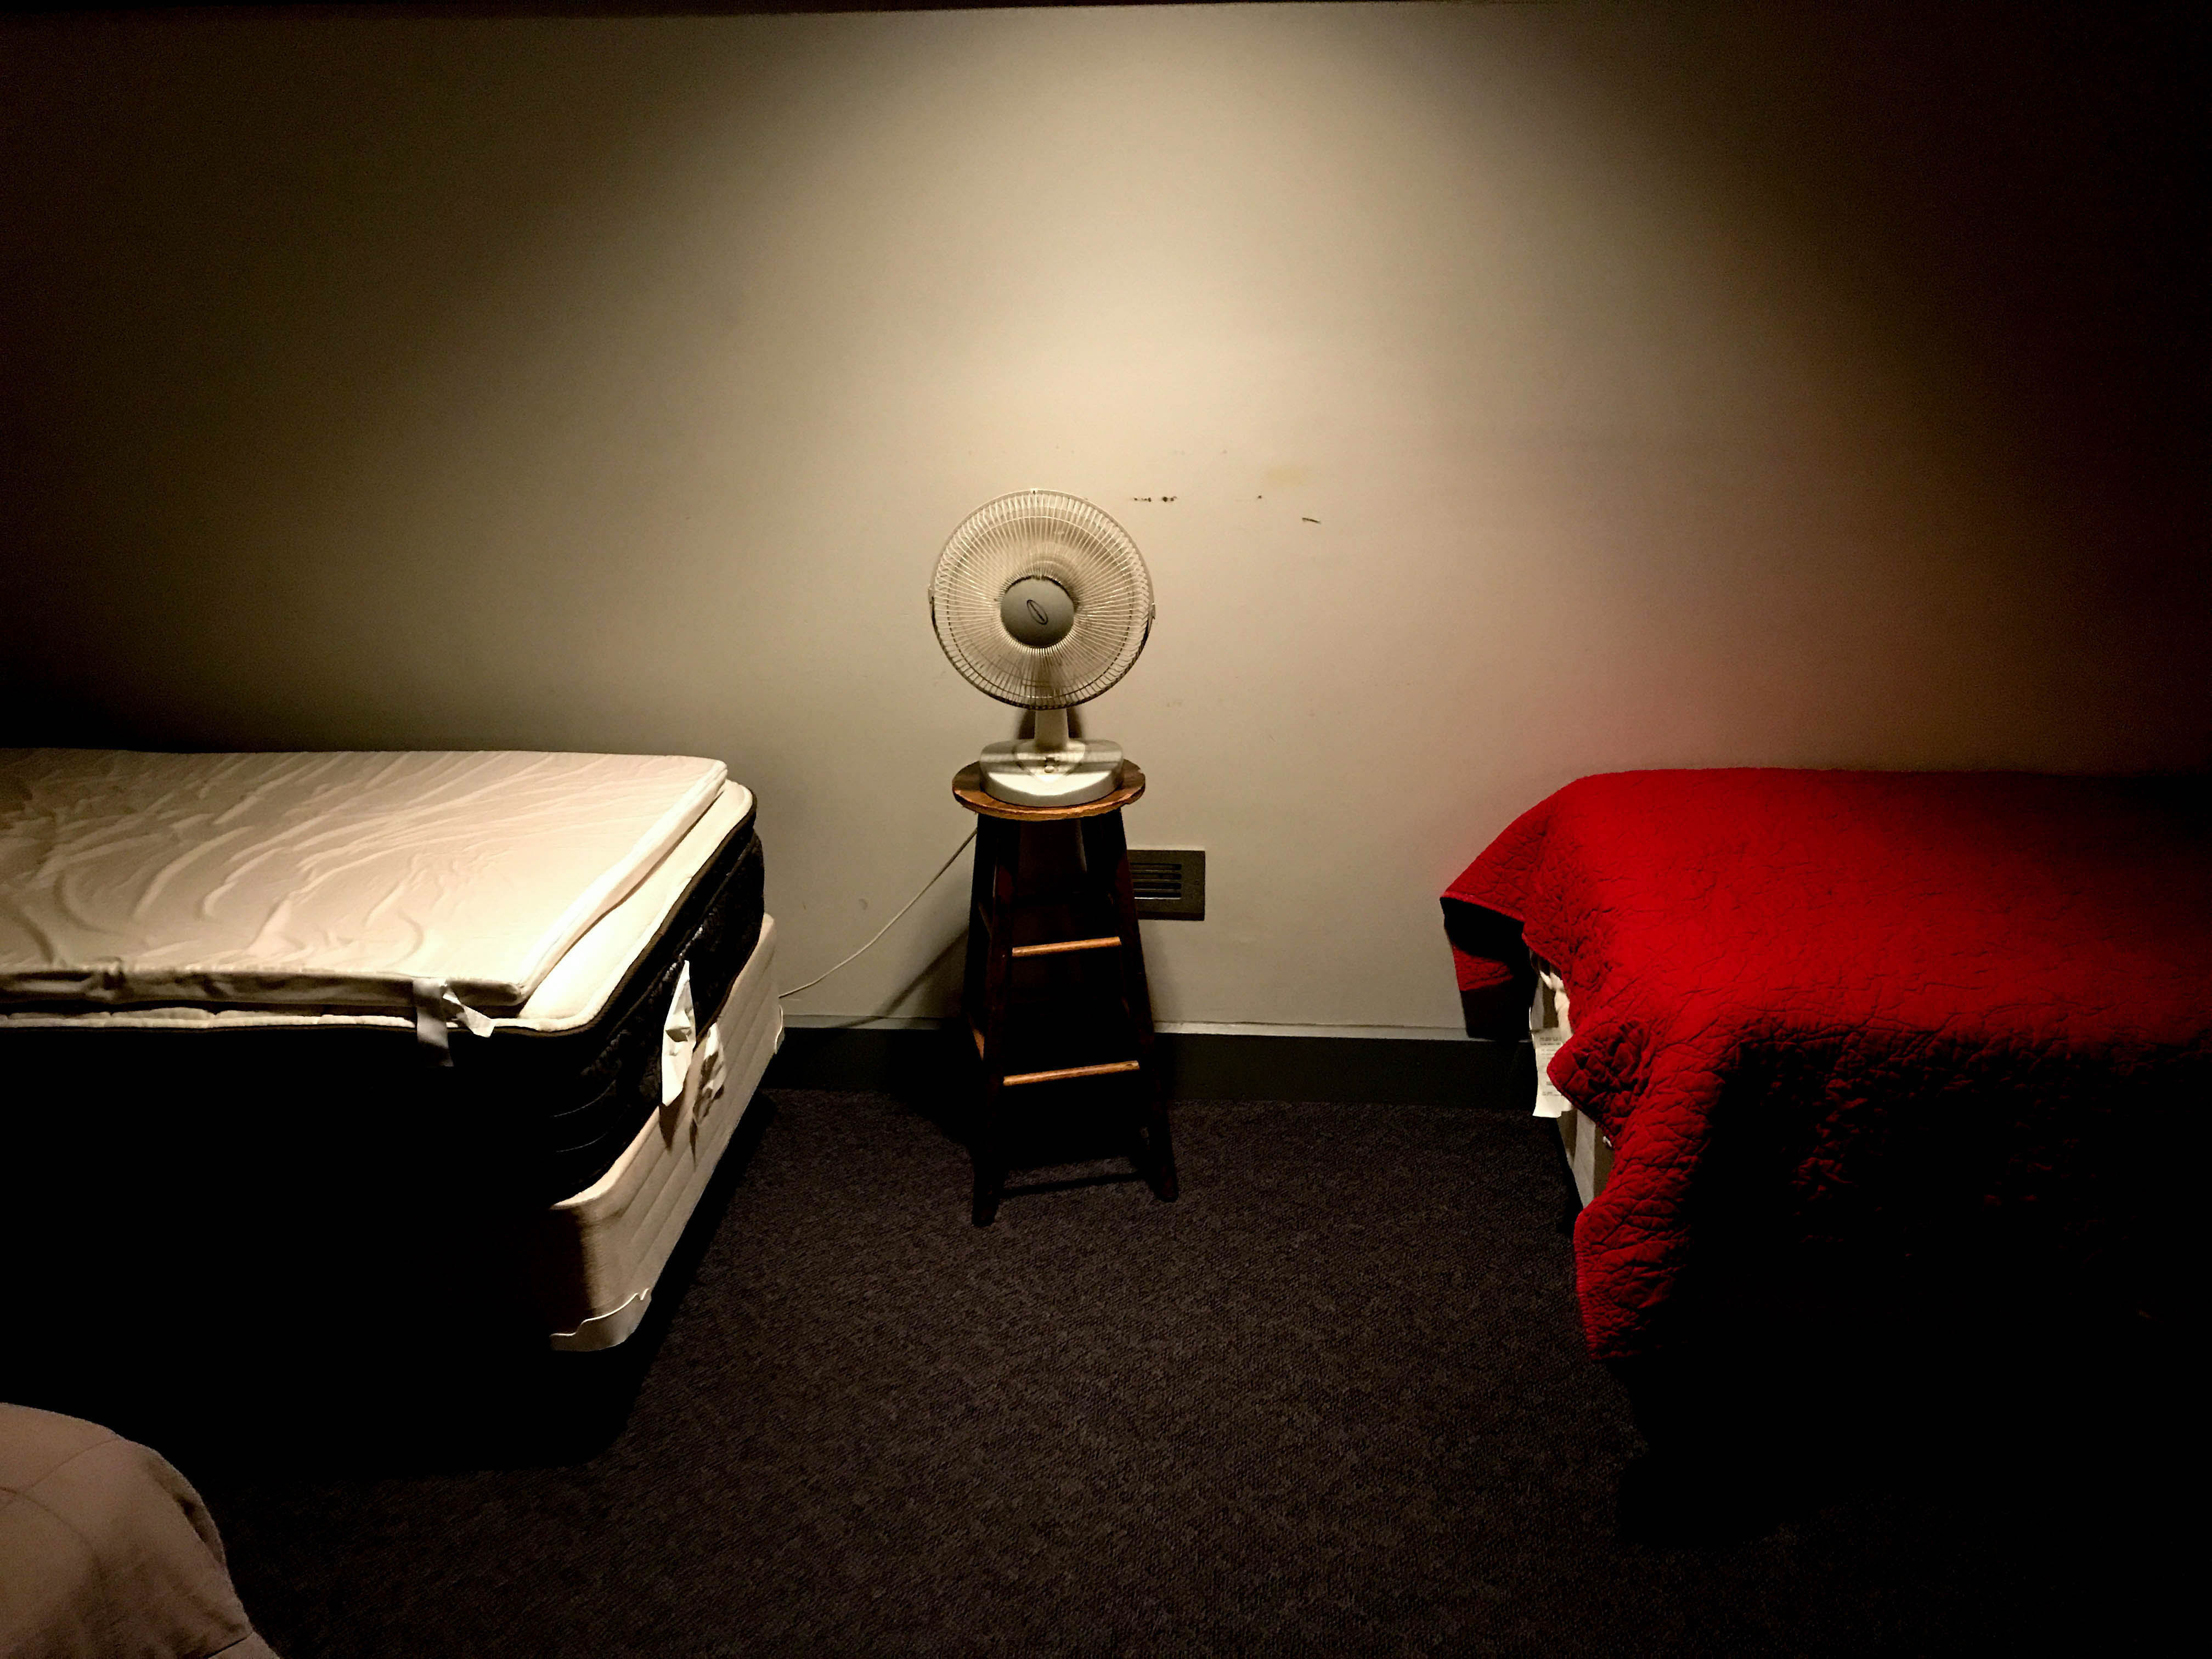 Two beds in the firefighters'sleeping quarters with a fan in between them.